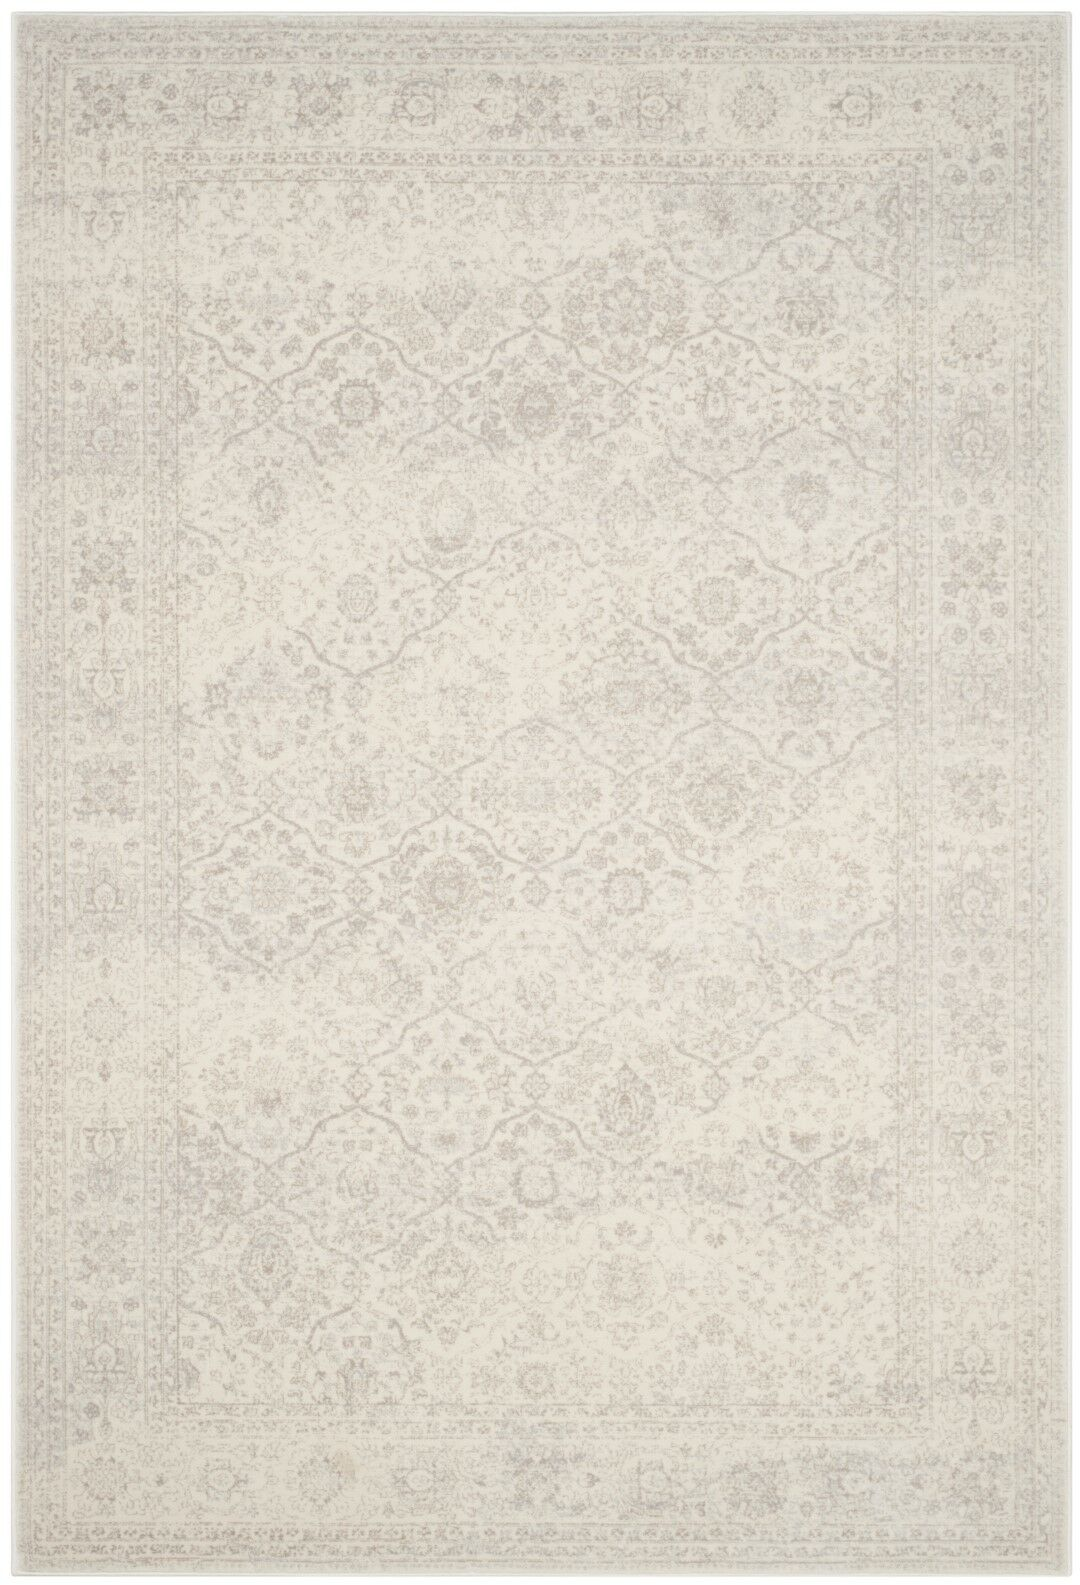 Akron Creek Cream/Light Gray Area Rug Rug Size: Rectangle 8' x 10'